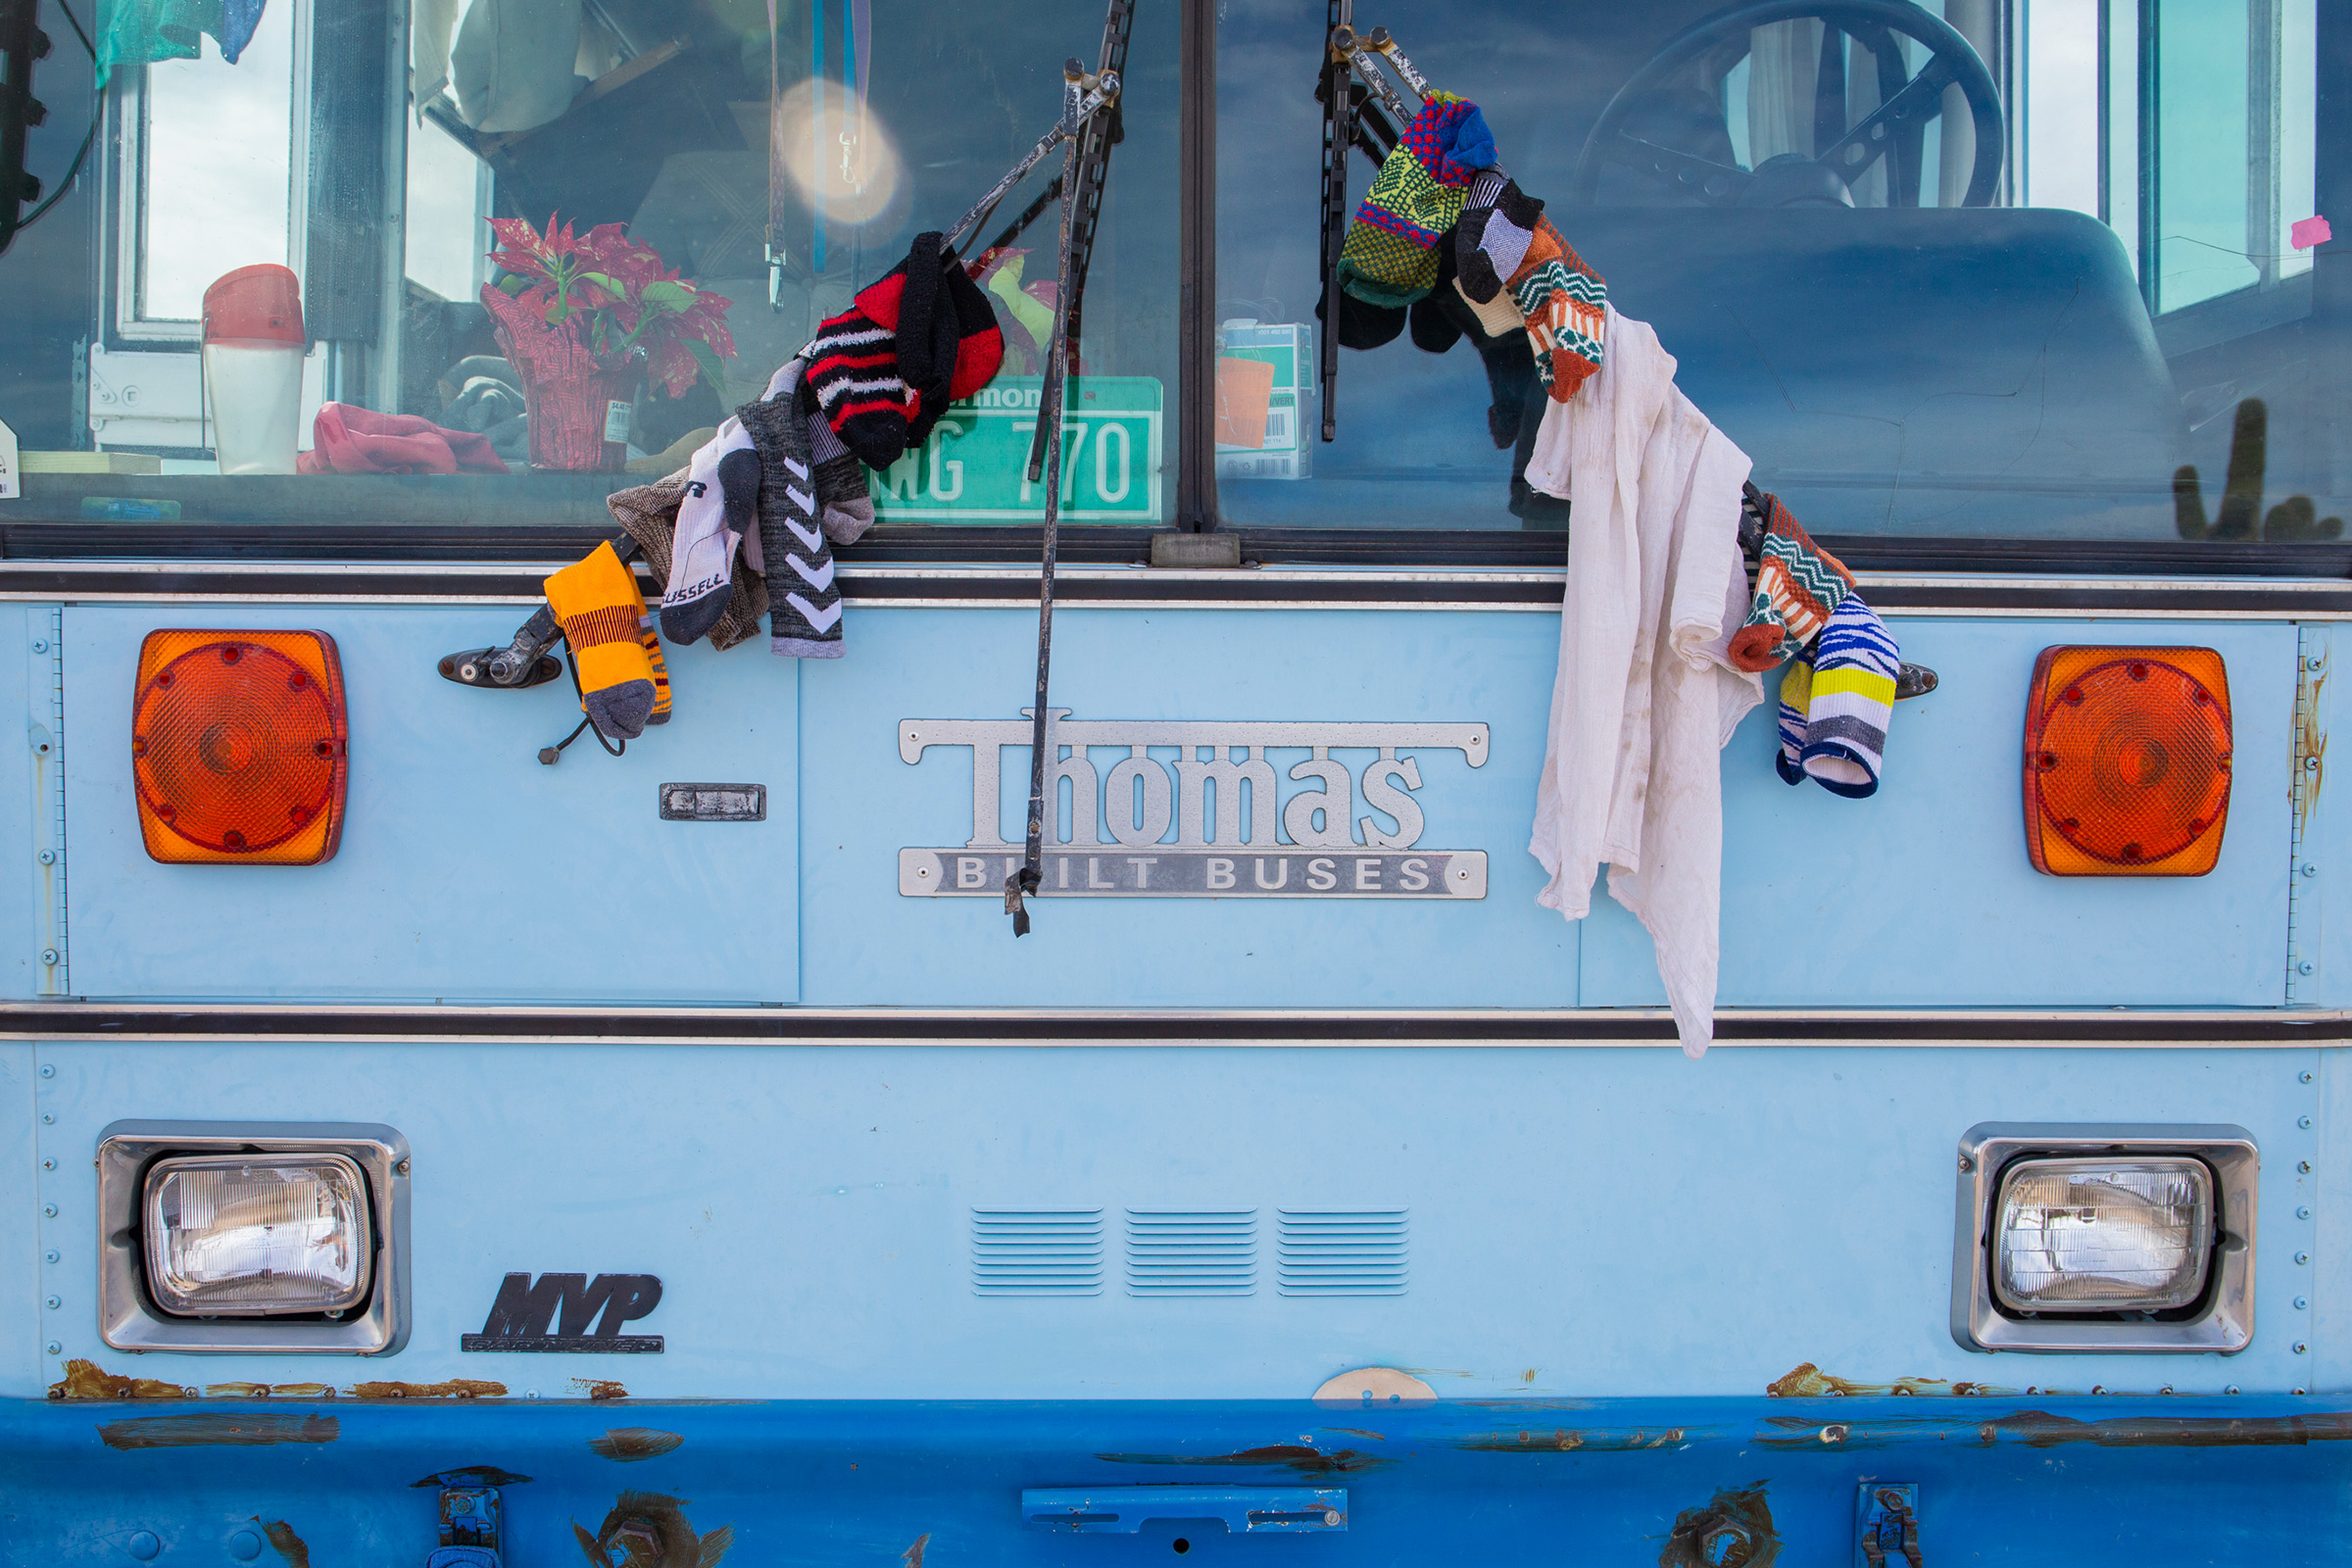 Paula and Max hang laundry on the bus to dry.